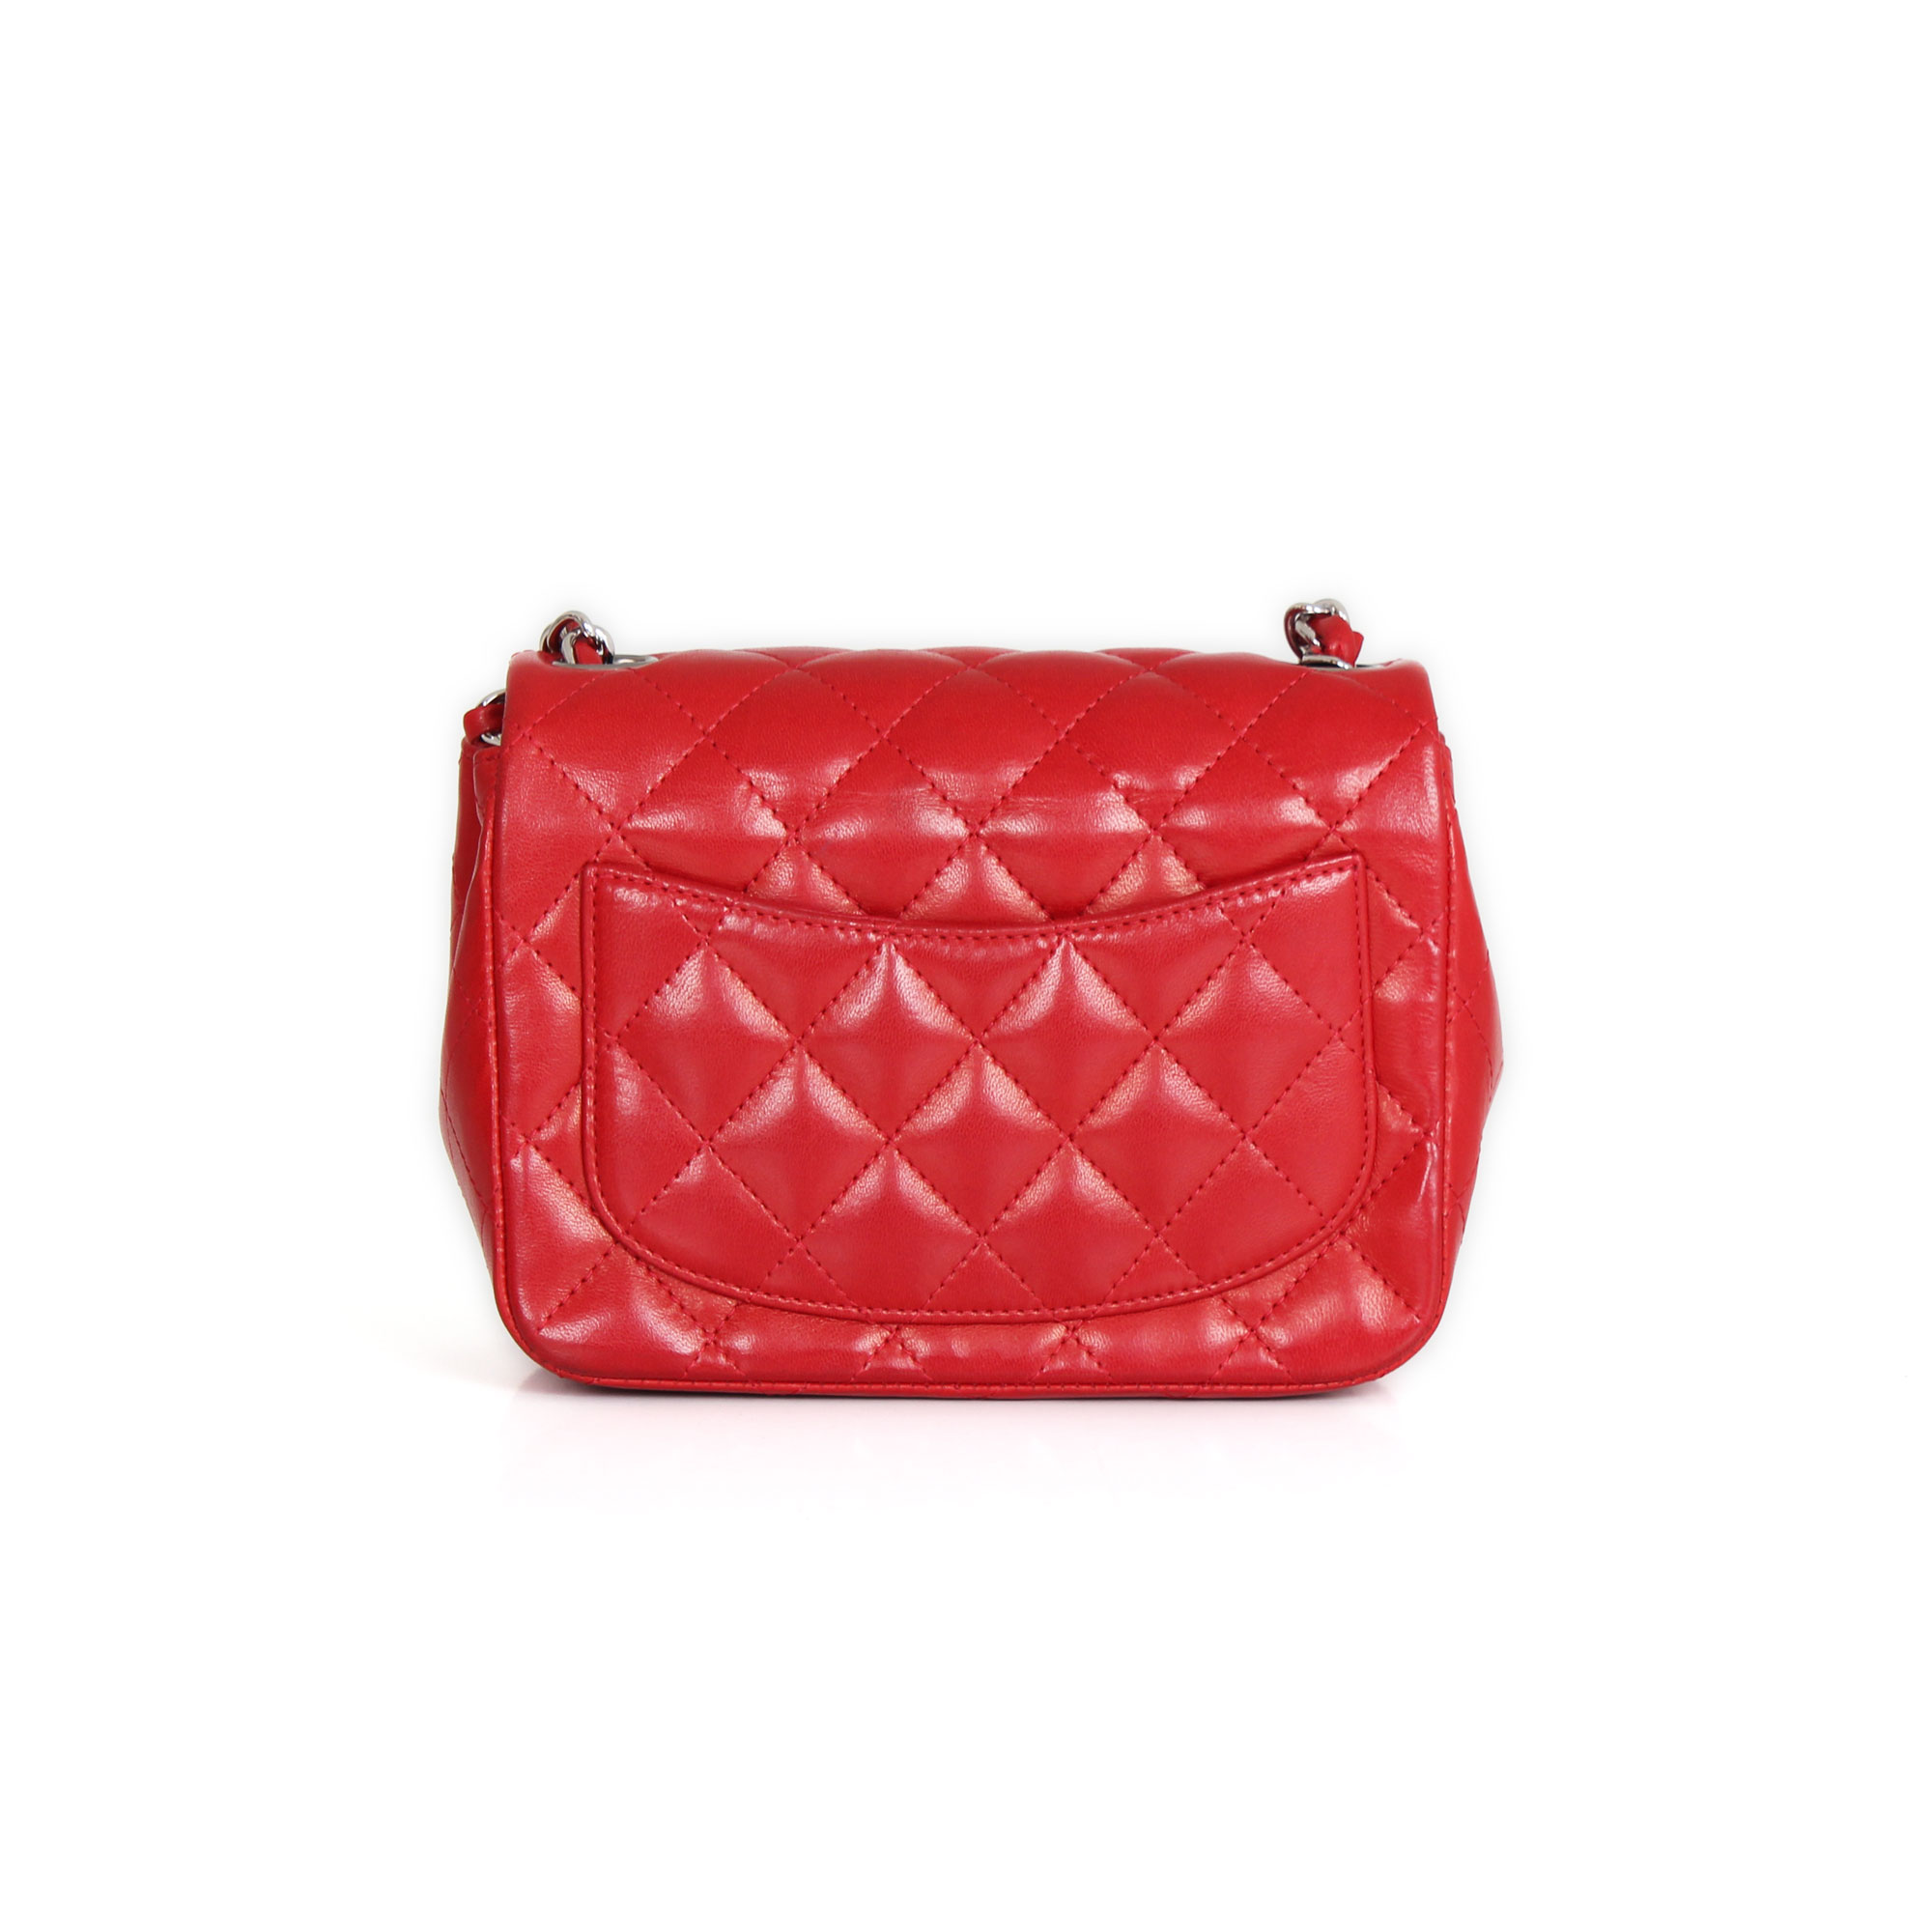 7370132ee45341 Chanel Timeless Mini Square Red lambskin leather | CBL Bags